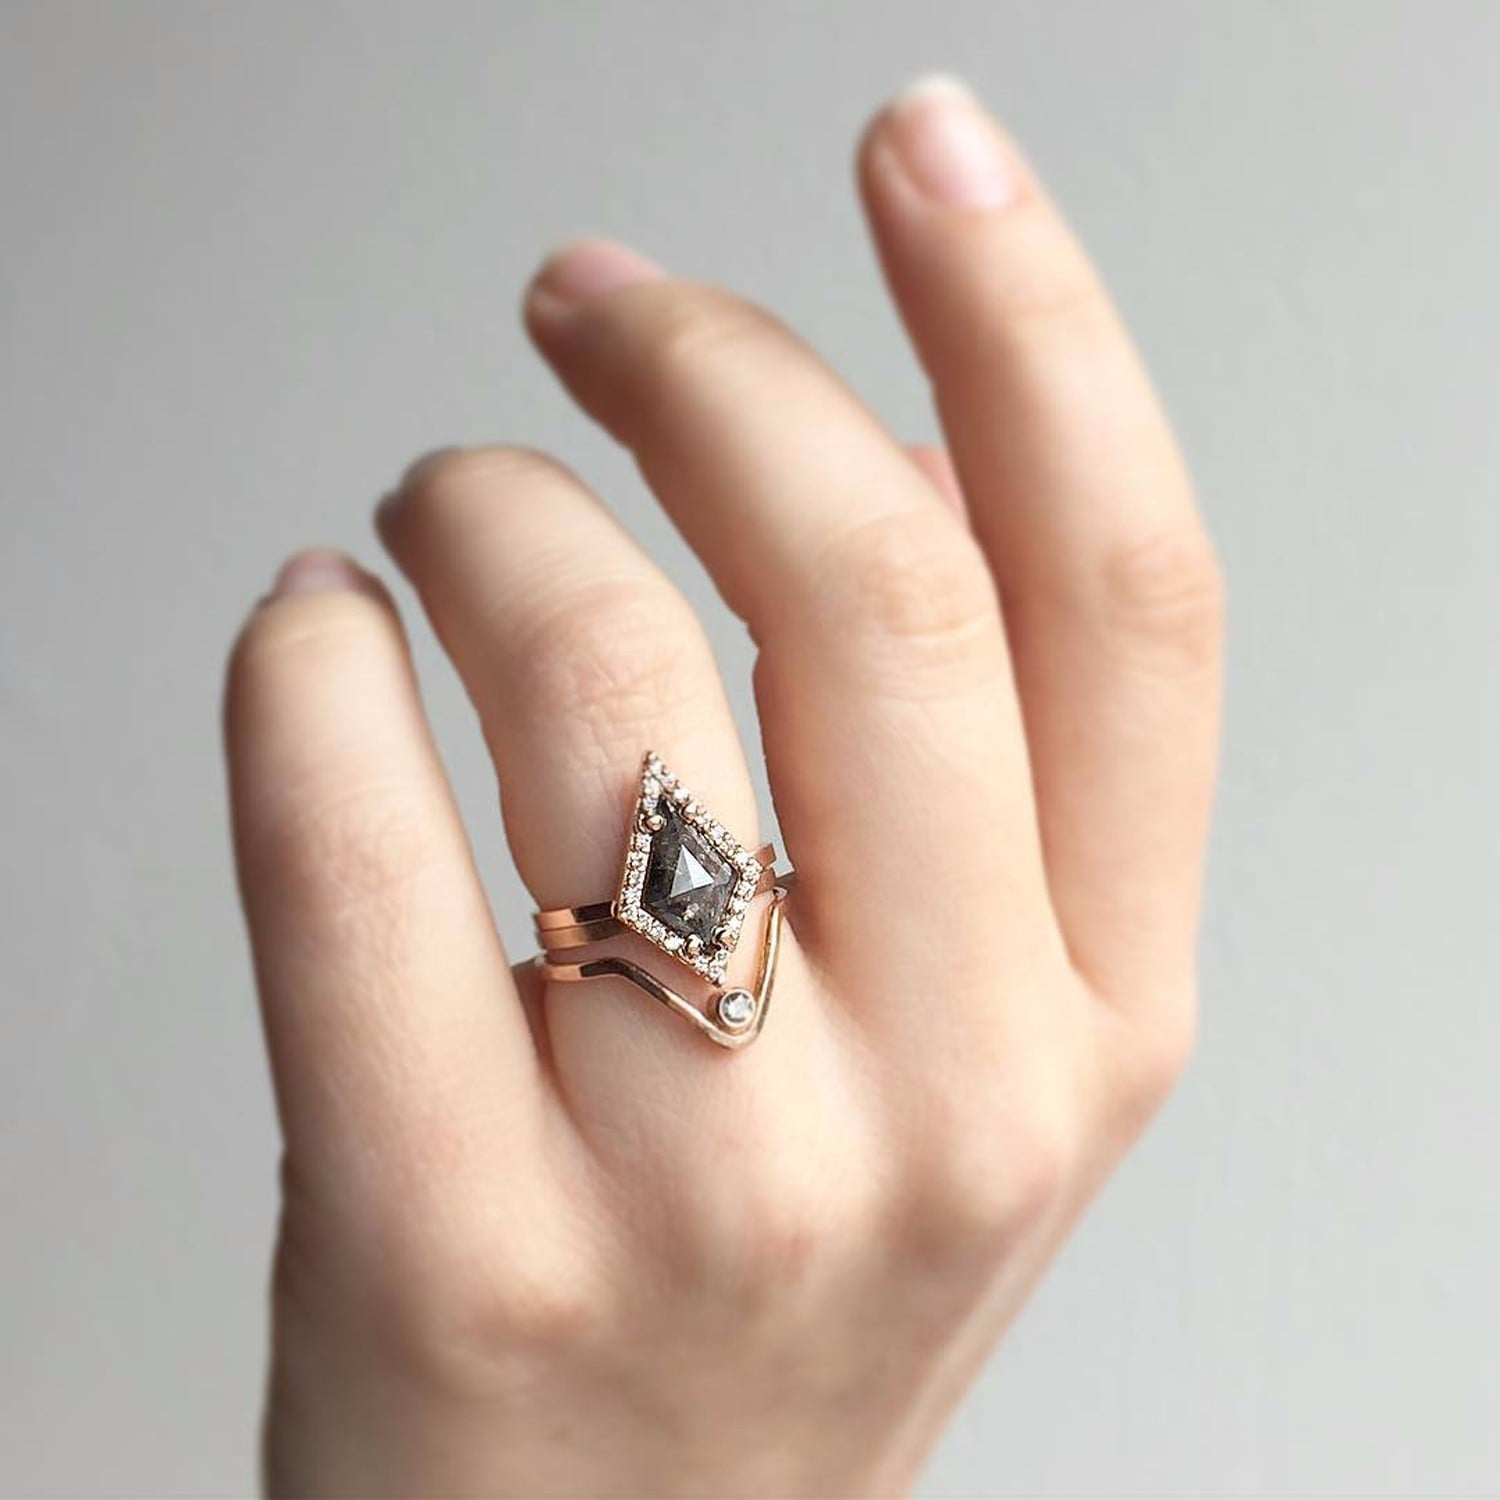 jewelry bling school vintage cushion cut style ring raindrop rings yc old cz serene sterling silver engagement